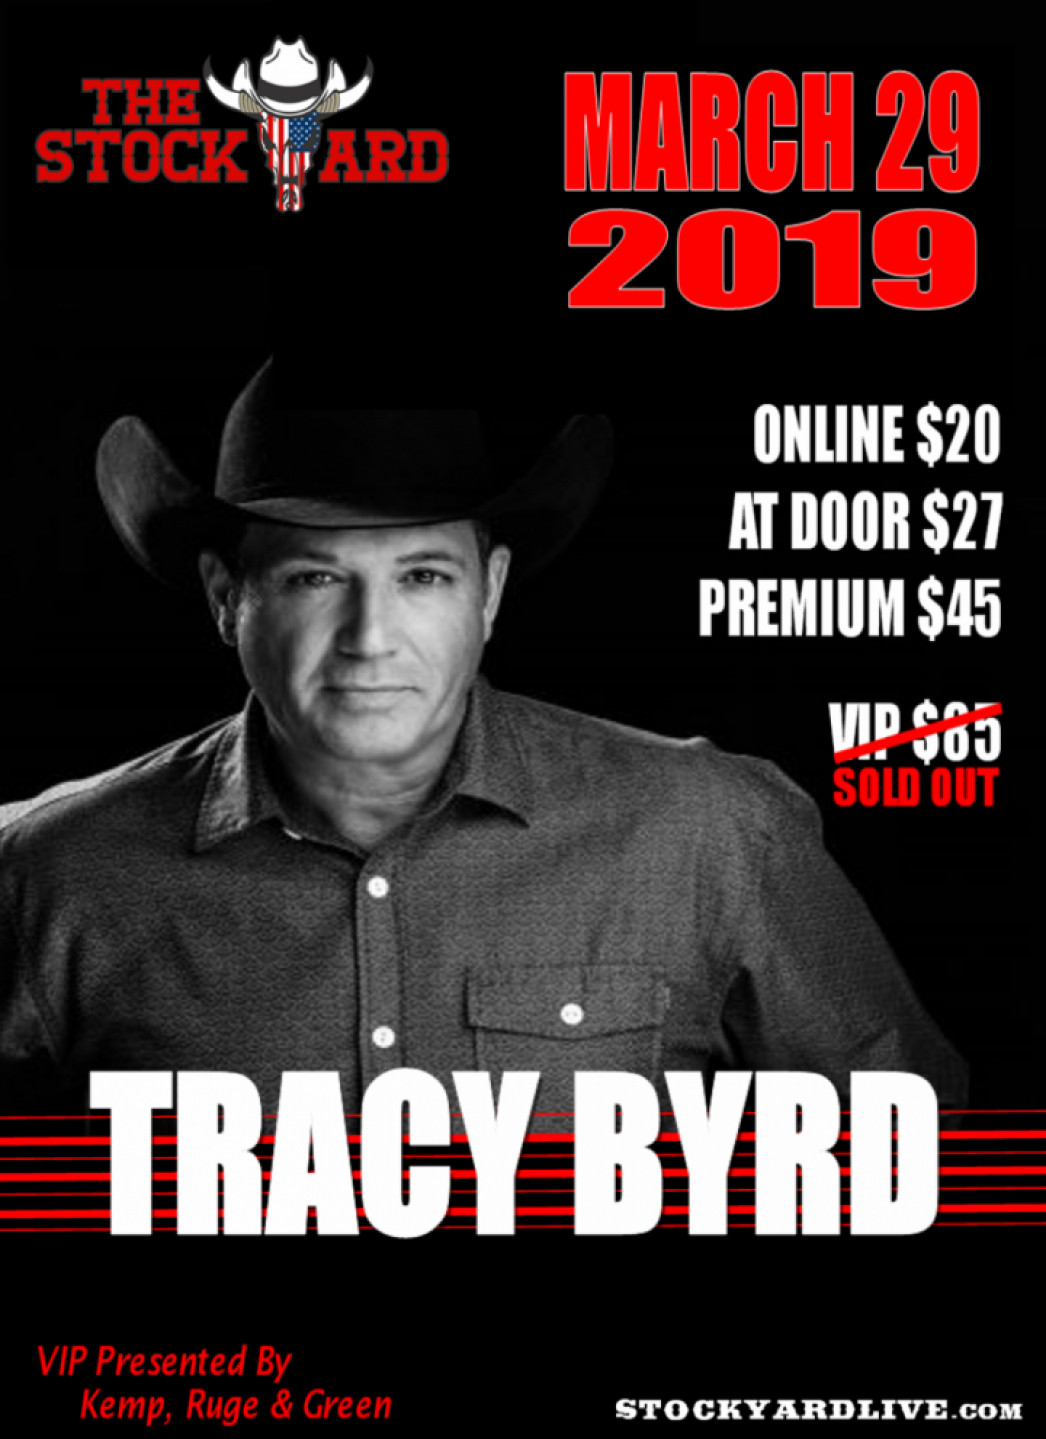 Tracy Byrd Live in Concert at The Stockyard -